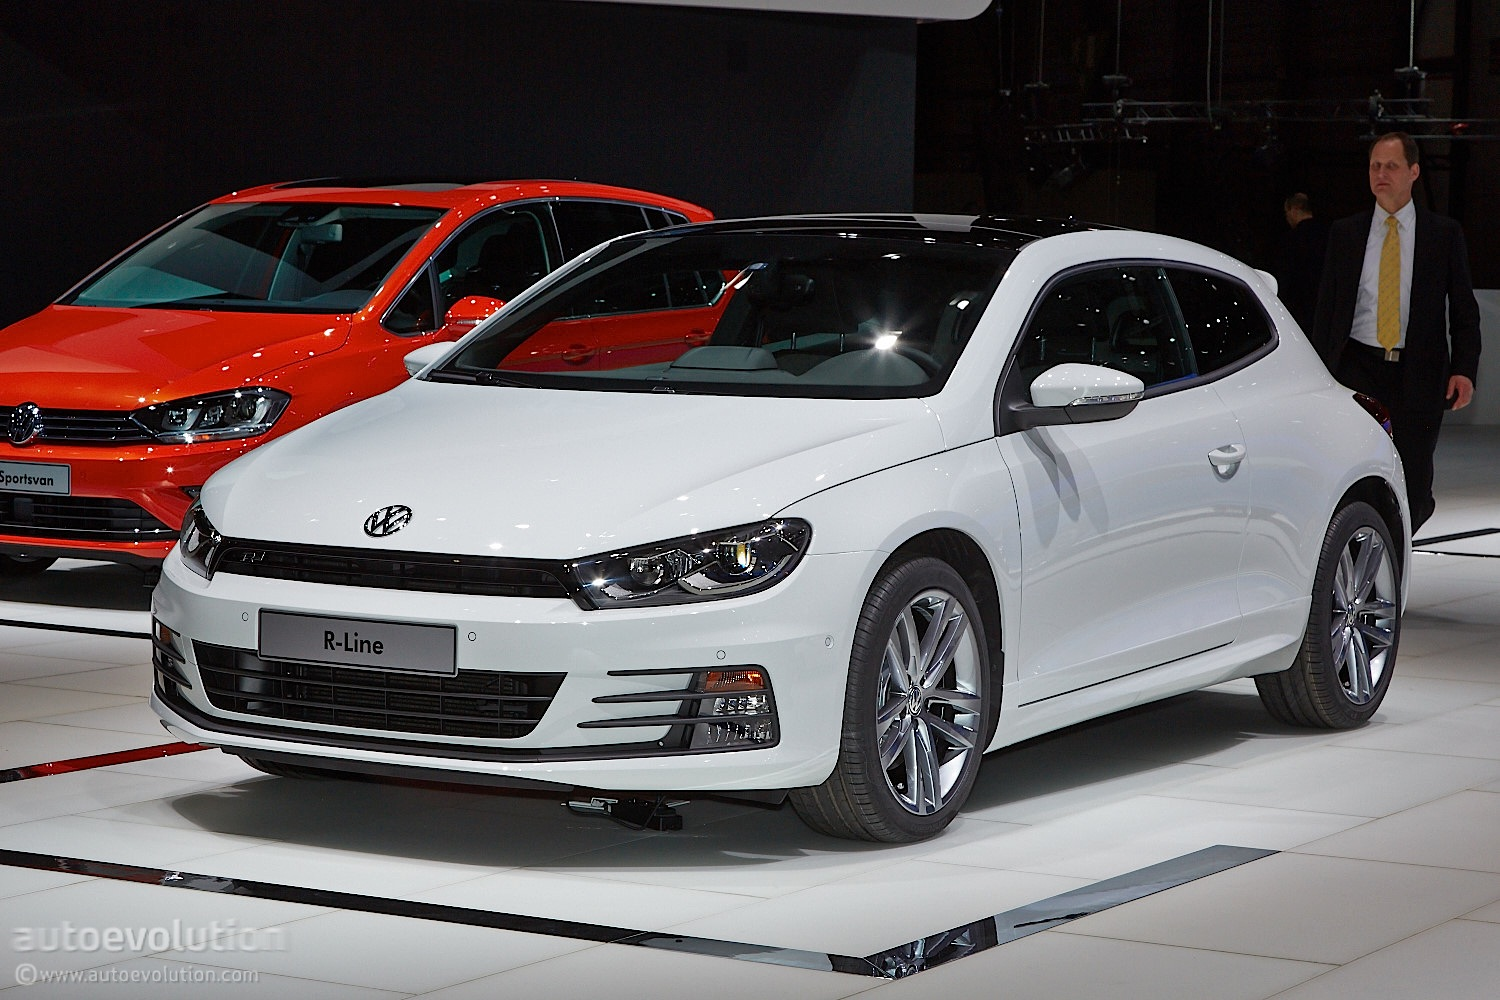 2014 Vw Scirocco Facelift Launched In Britain  Pricing And